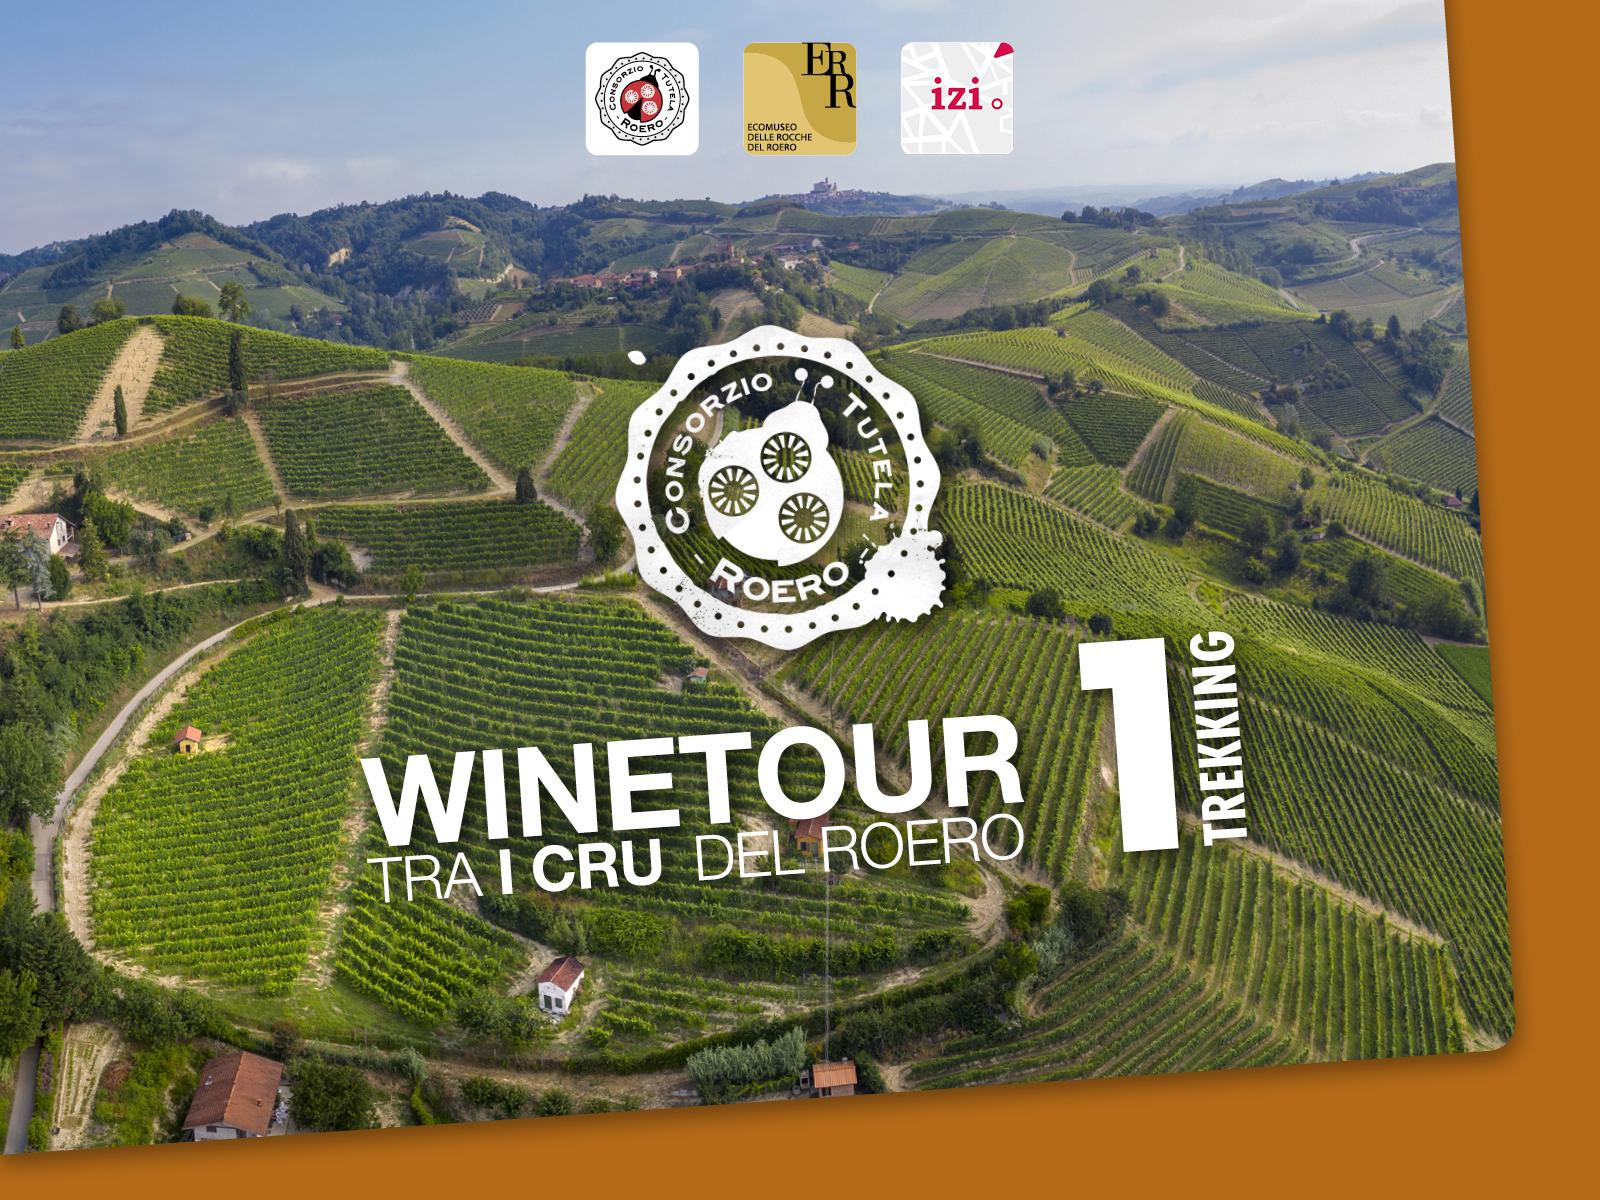 WineTour 1 – The cru where the Arneis wine was born